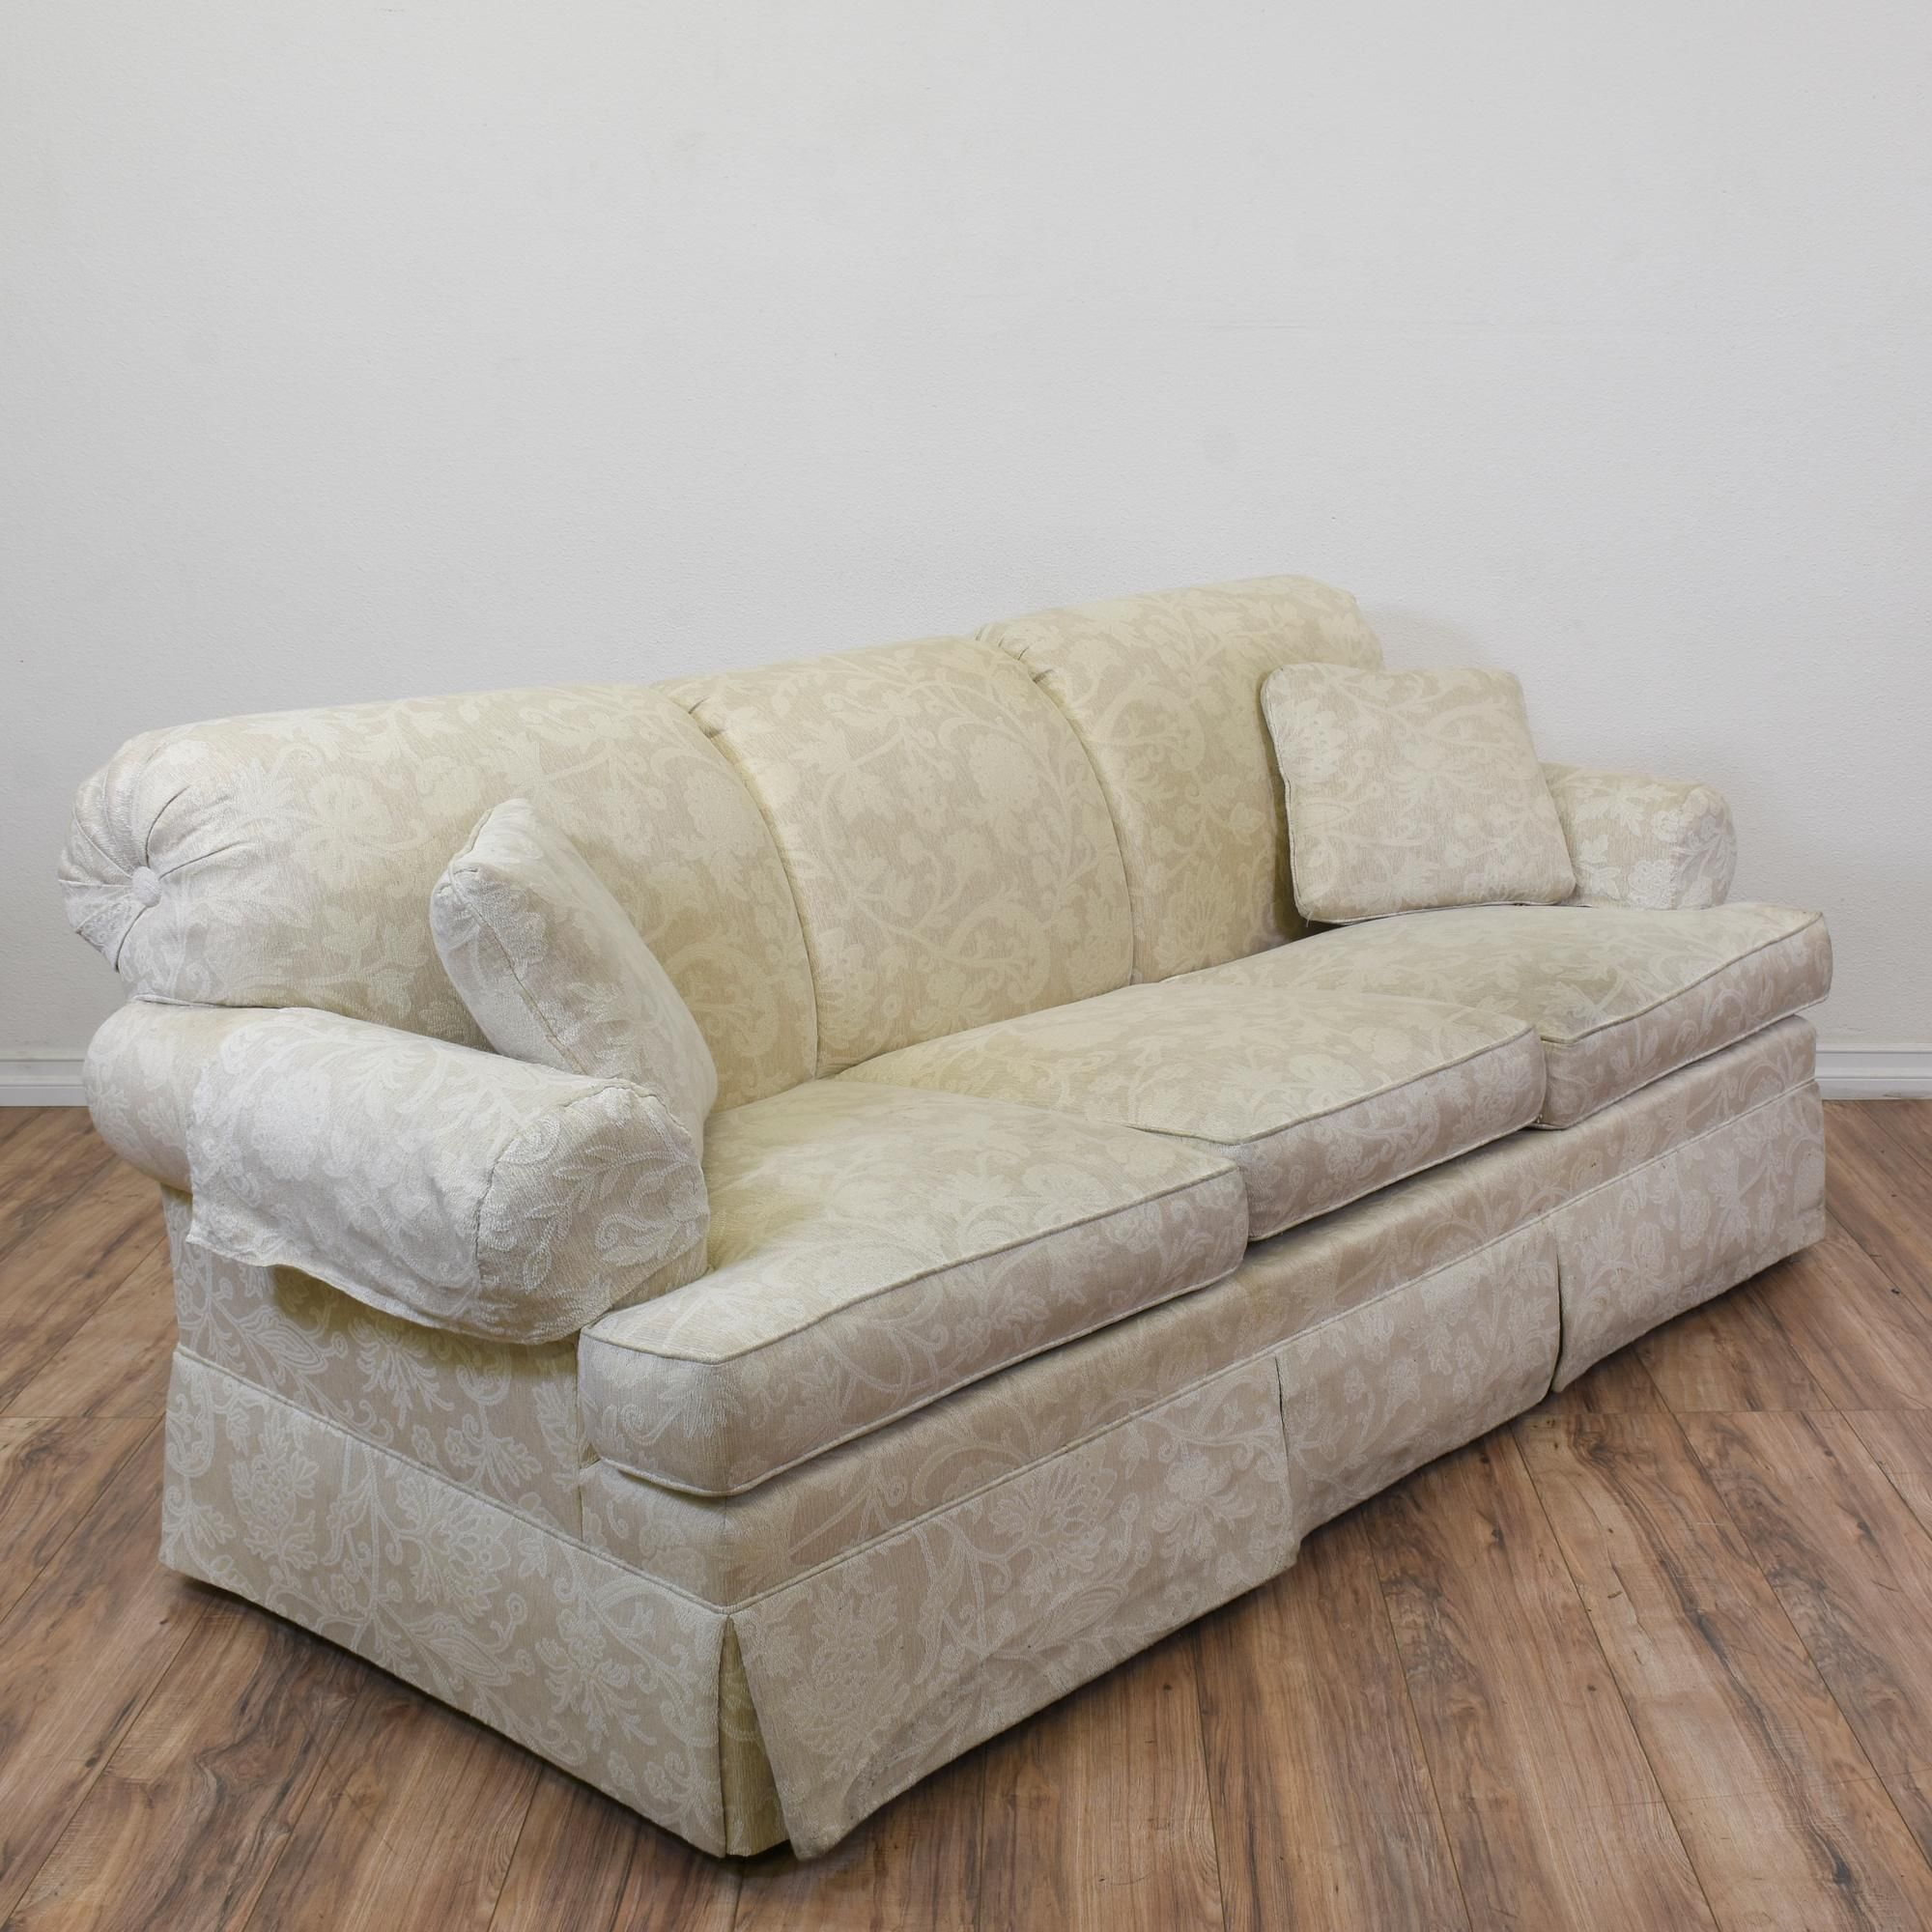 This sofa is upholstered in an orange floral pattern This